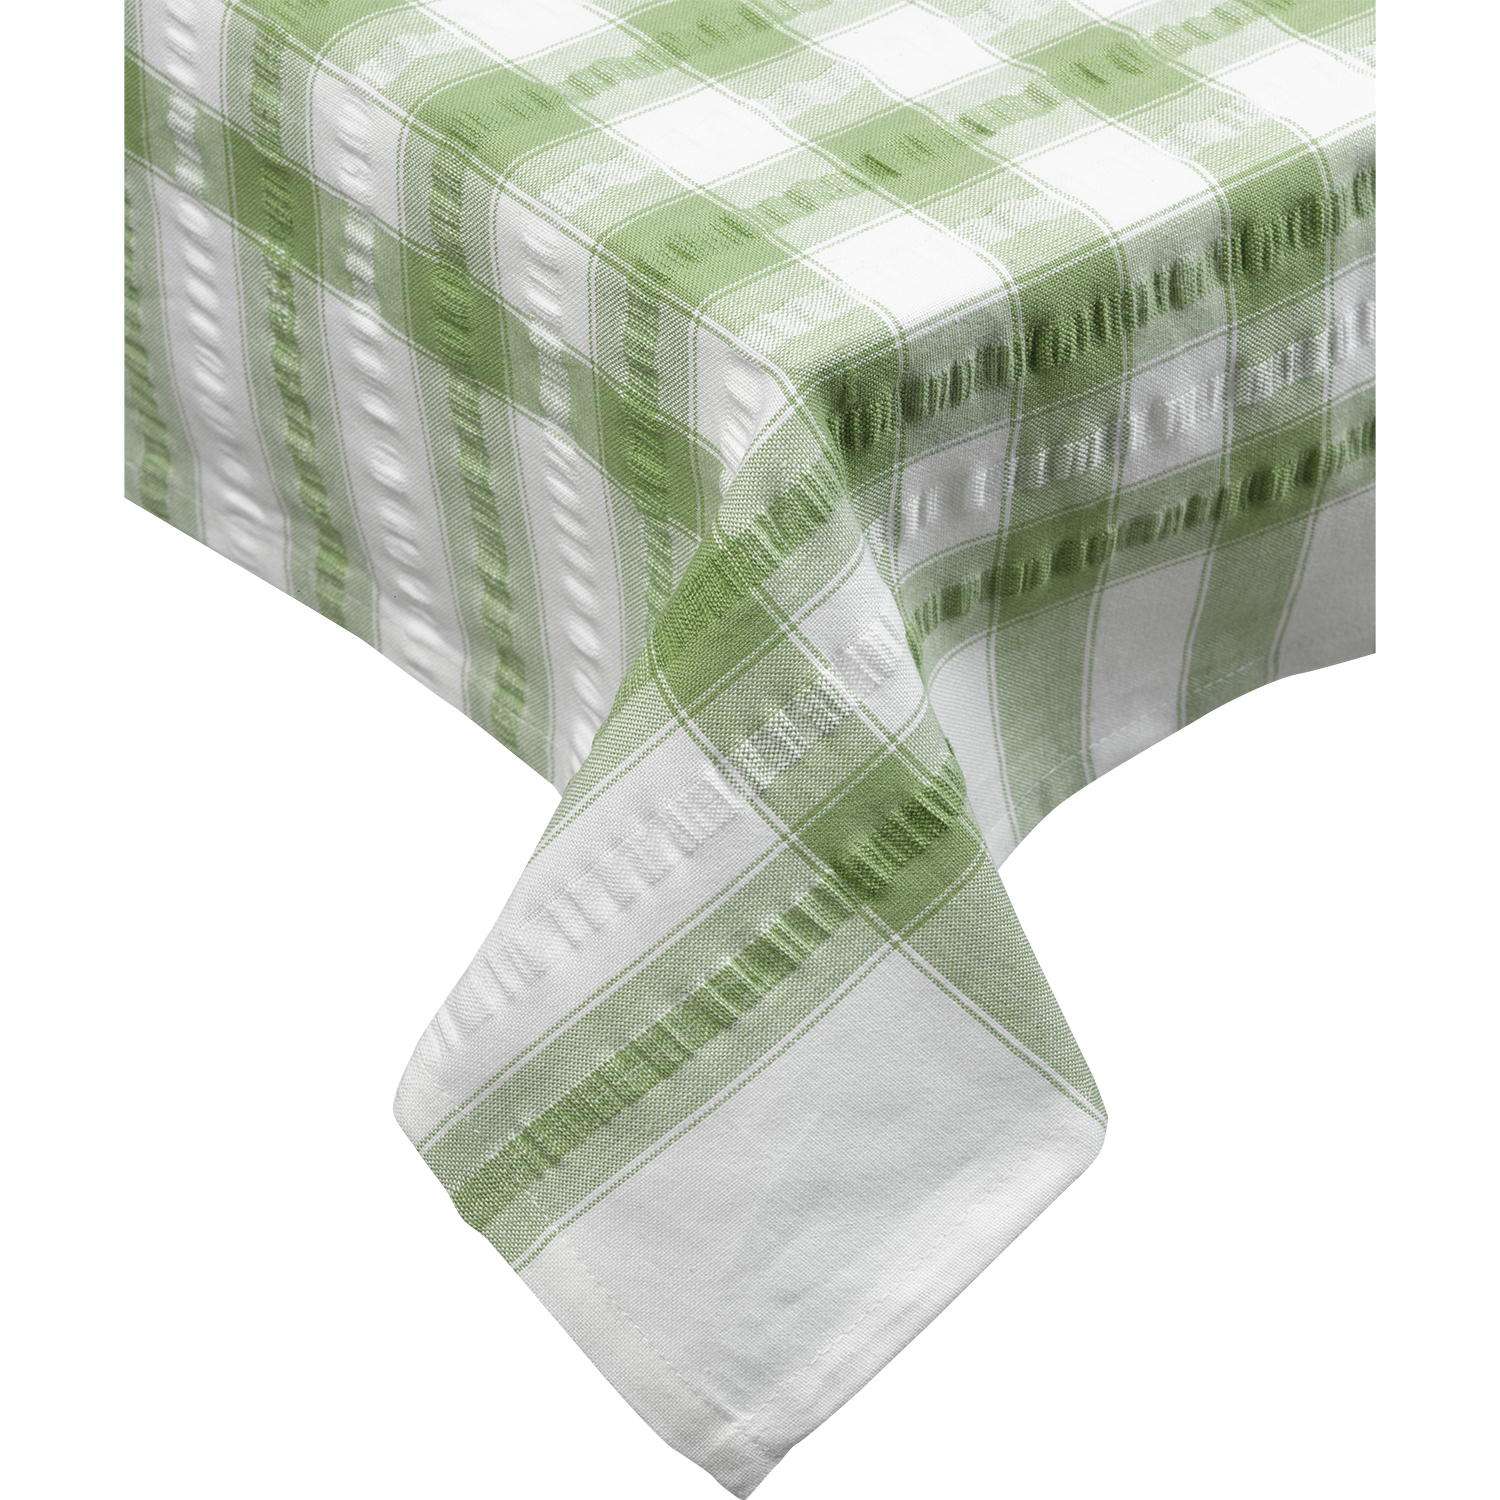 Cotton Seersucker Tablecloth Kitchen Dining Room Garden Check Table Linen Cov